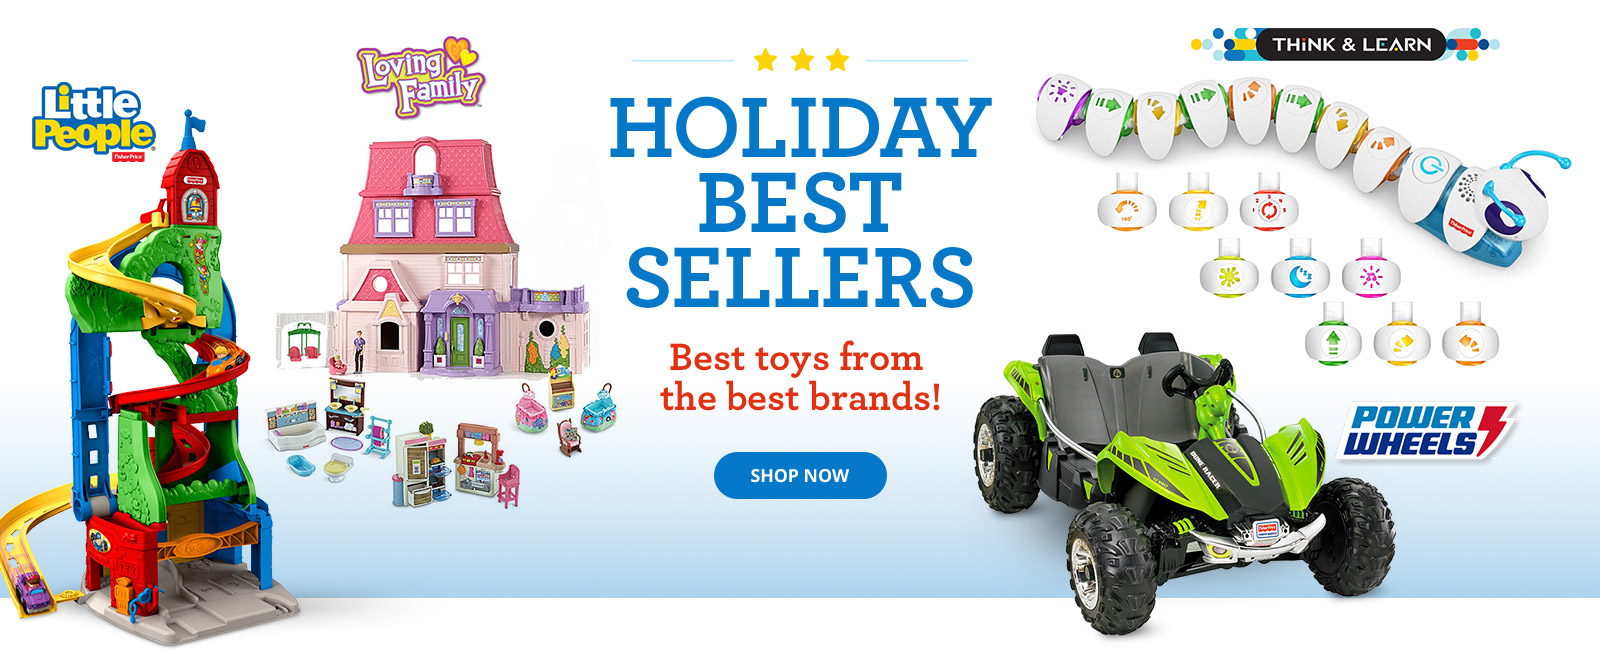 Holiday Best Sellers'